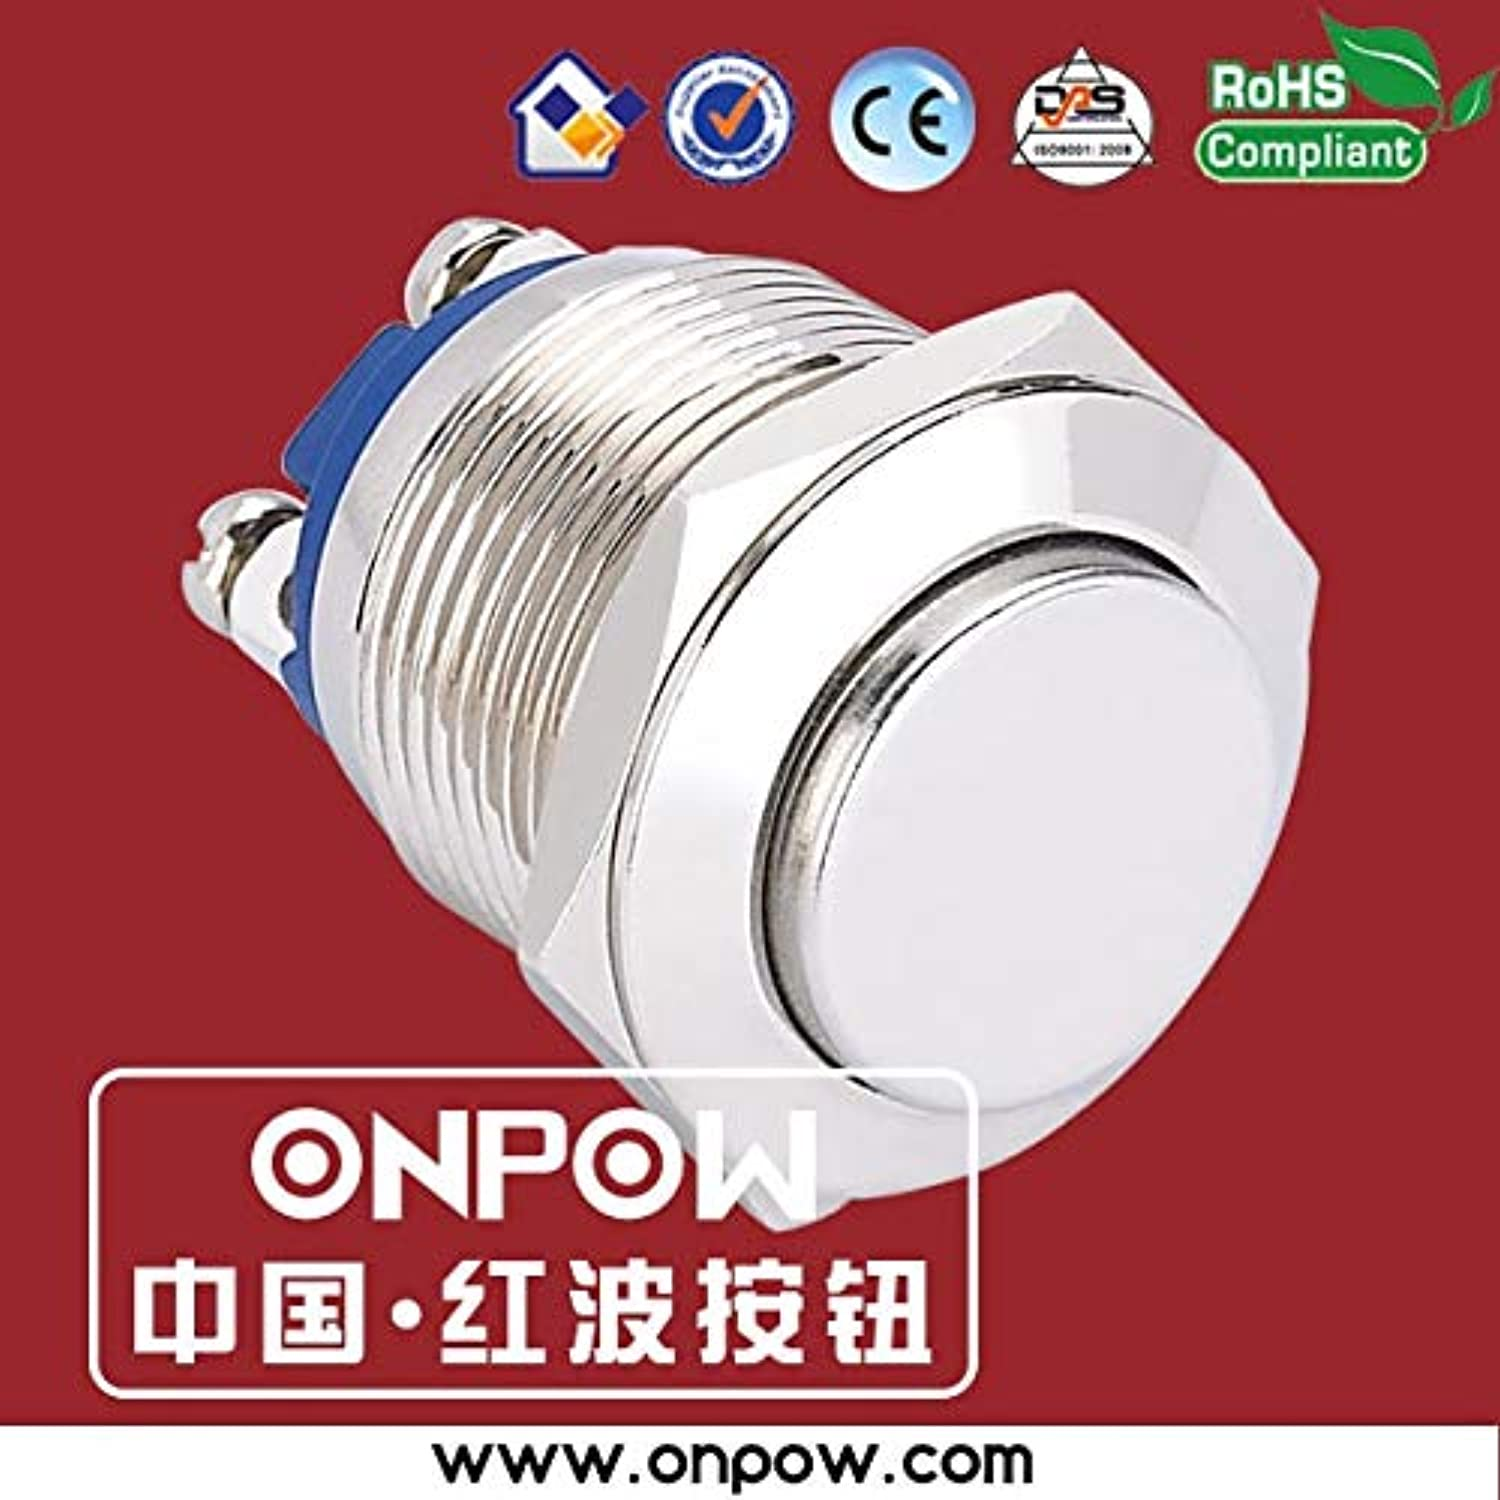 19mm high Head pushbutton Switch GQ19H10 N